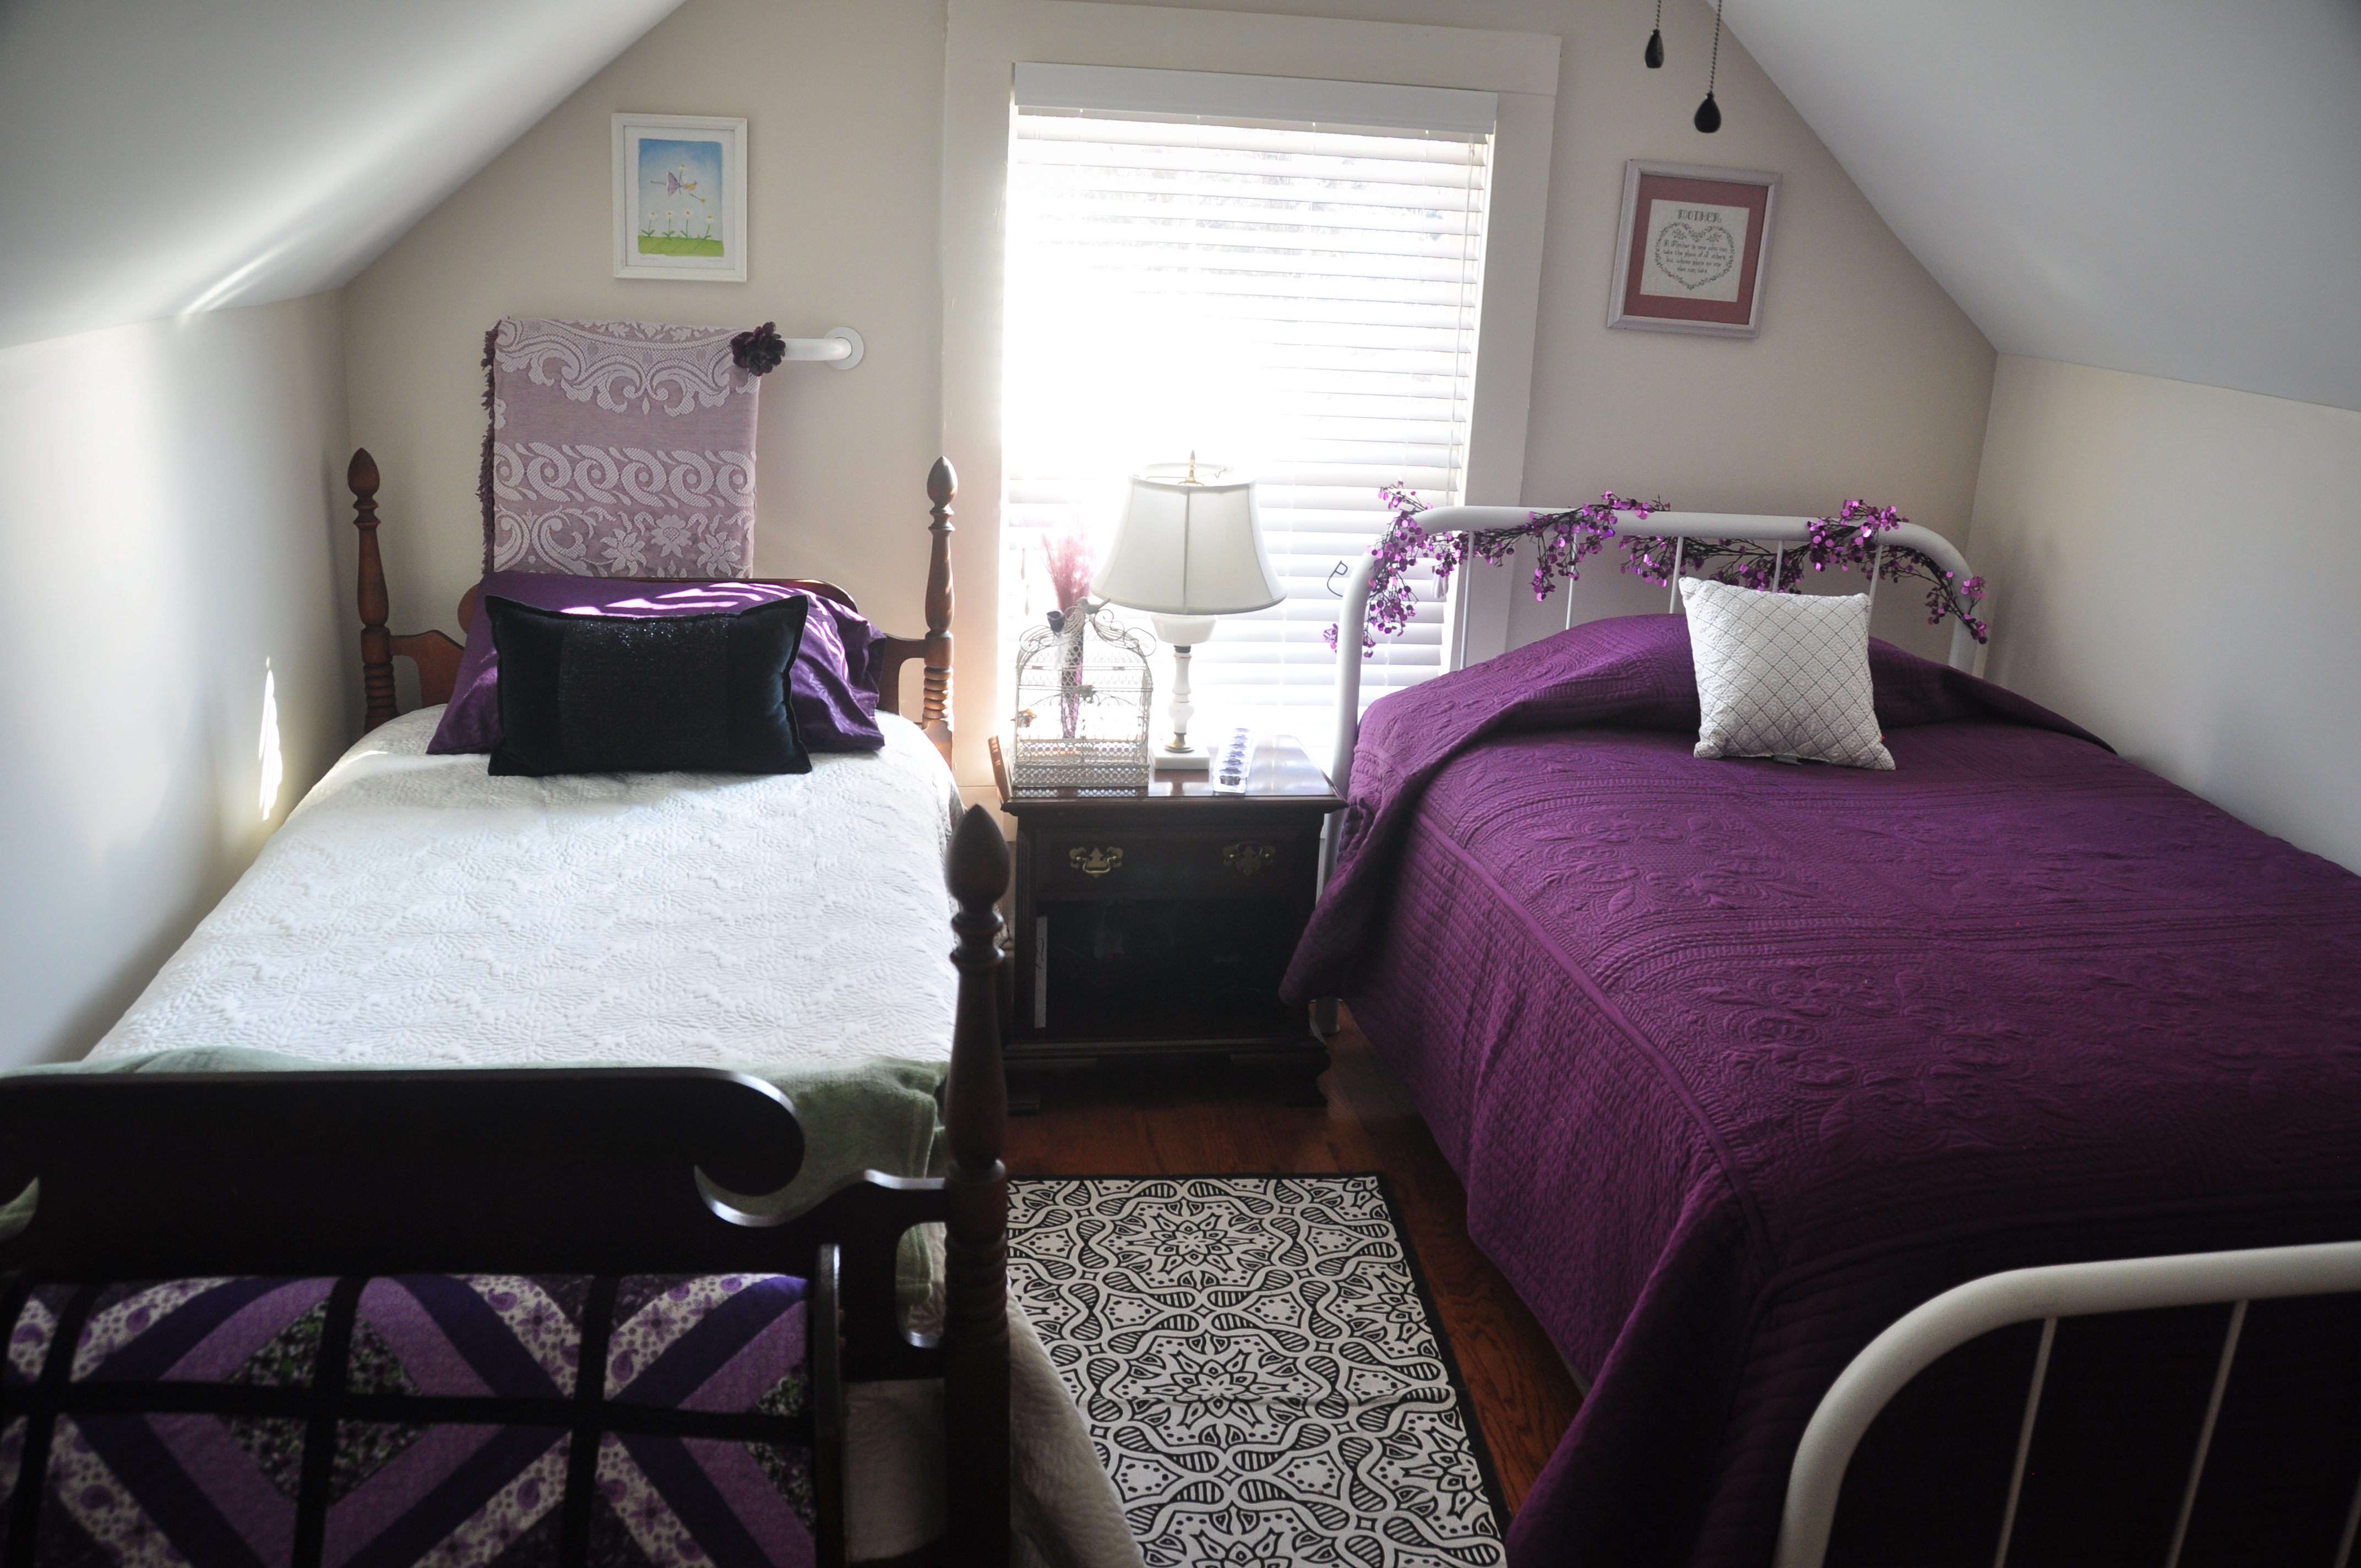 Two beds with purple linens